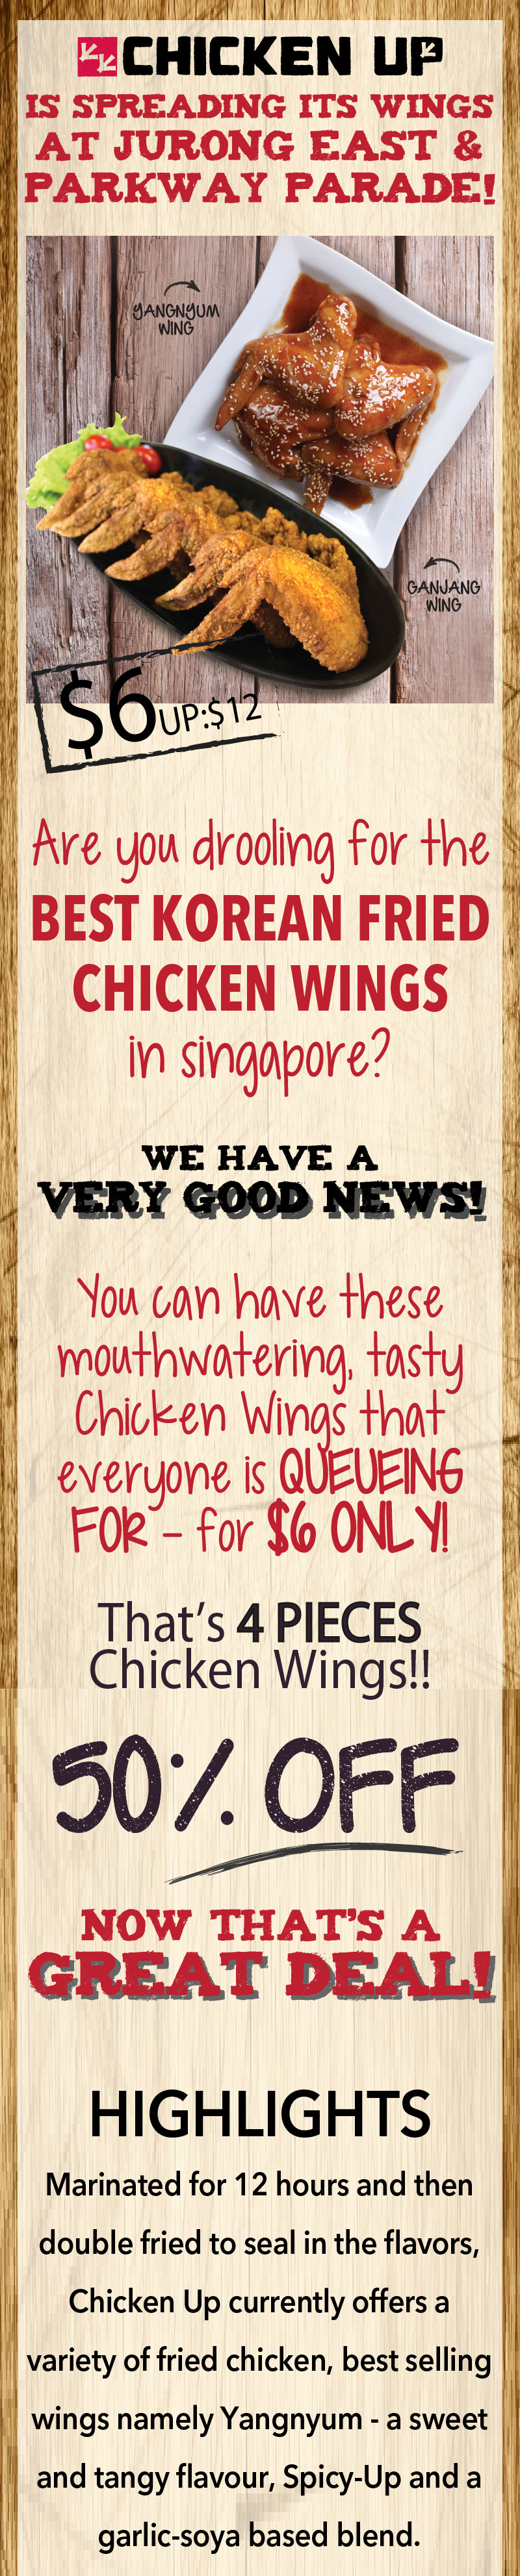 Chicken Up SG 50% Off 4pcs Wings Coupon Valid 30 Days after Purchase - Why Not Deals 1 & Promotions